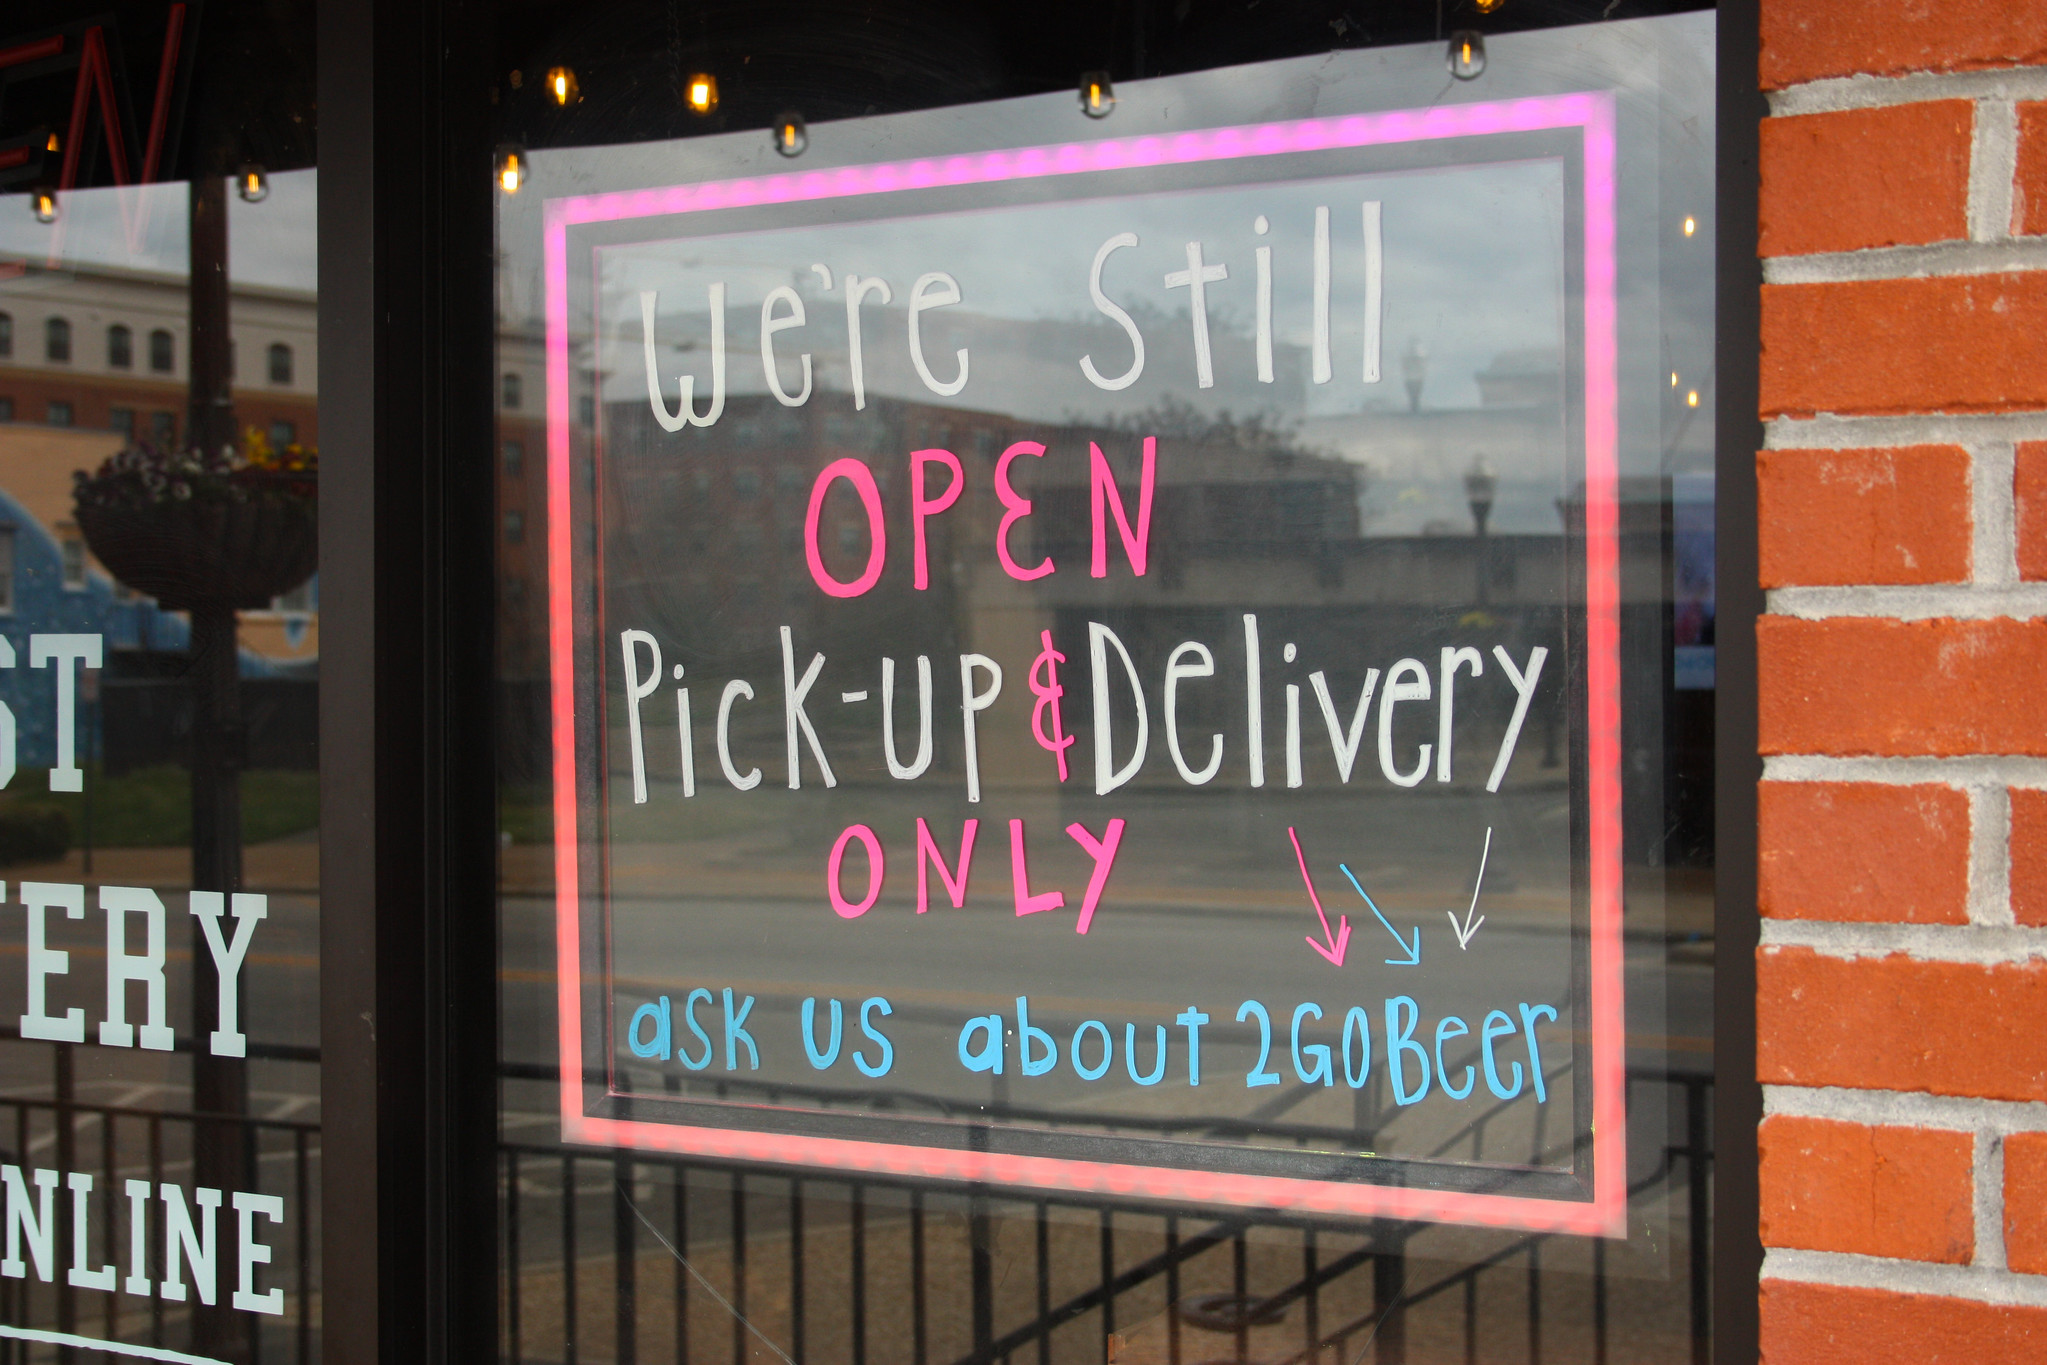 Pick up and delivery restaurant sign